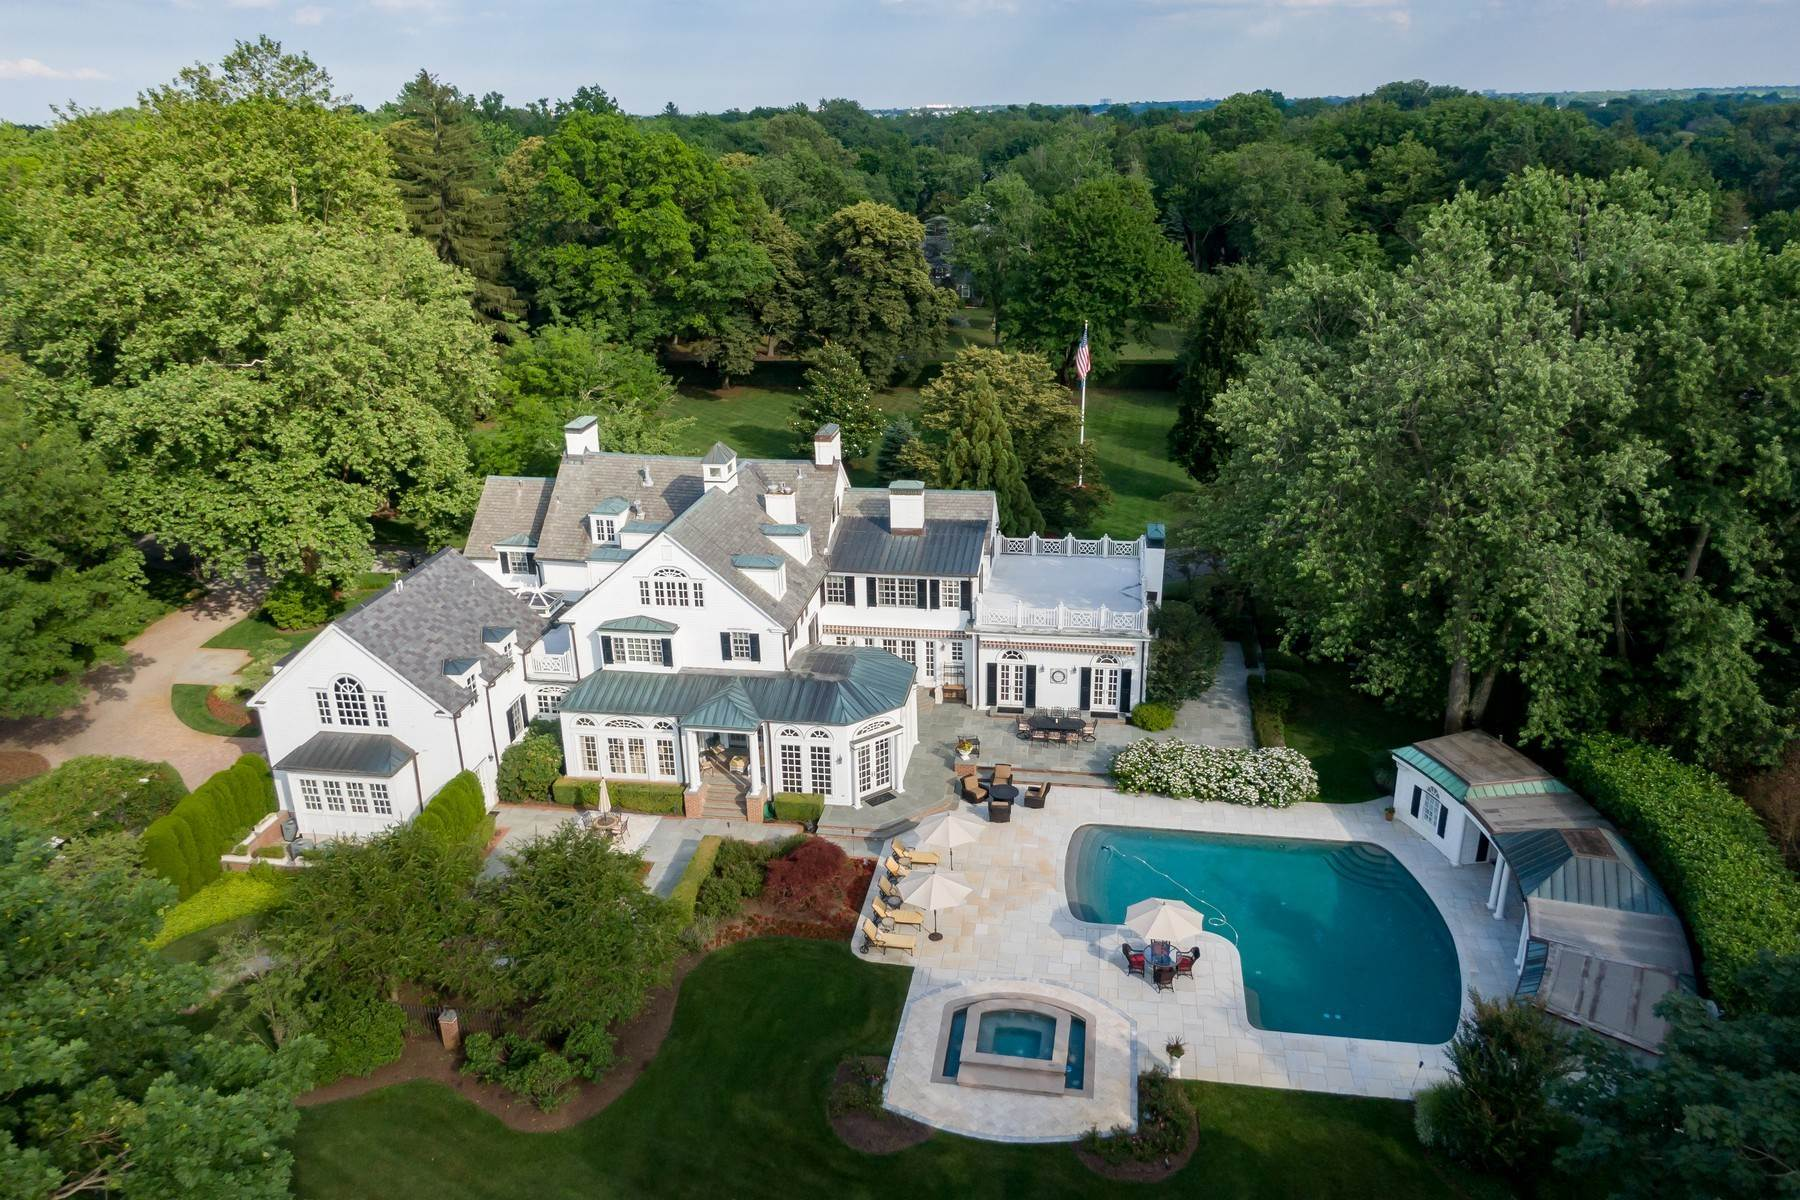 Single Family Homes for Sale at Luxurious Estate with All the Updates and Space Designed for Today's Living 178 Rumson Road Rumson, New Jersey 07760 United States